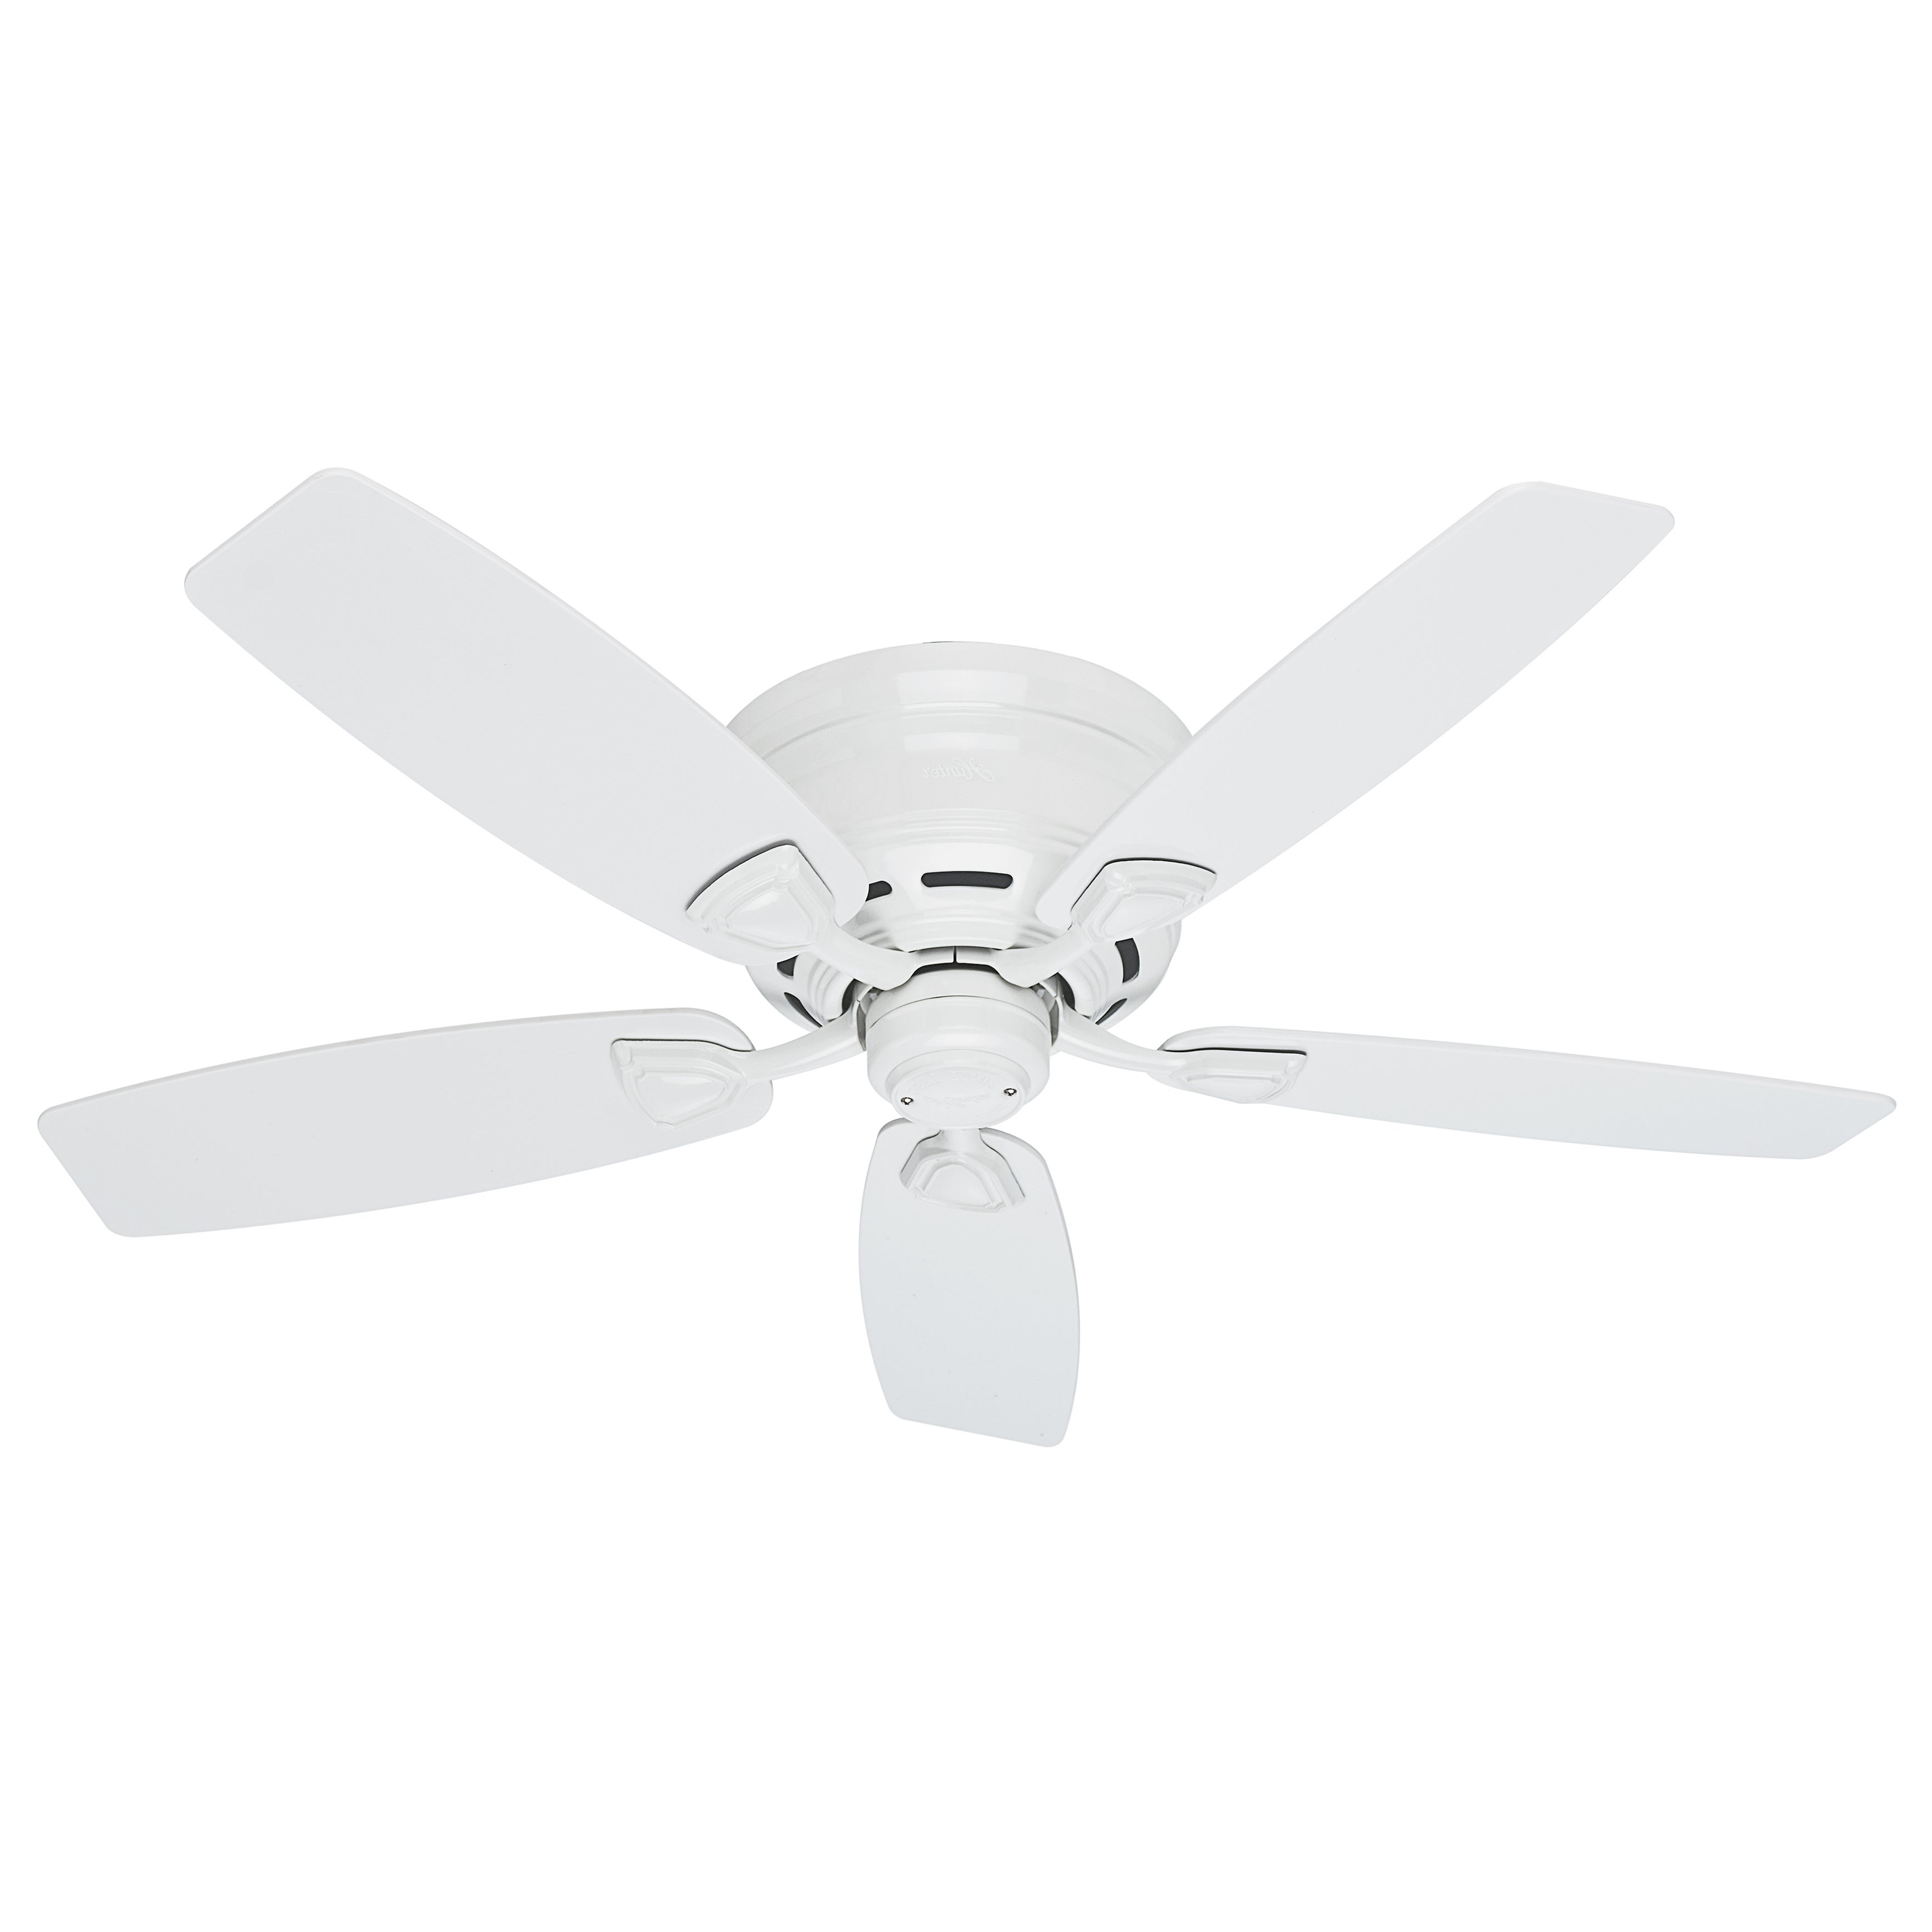 Sea Wind 5 Blade Ceiling Fans With Regard To 2020 Hunter Sea Wind 48 Inch Etl Damp Rated White Ceiling Fan (View 15 of 20)